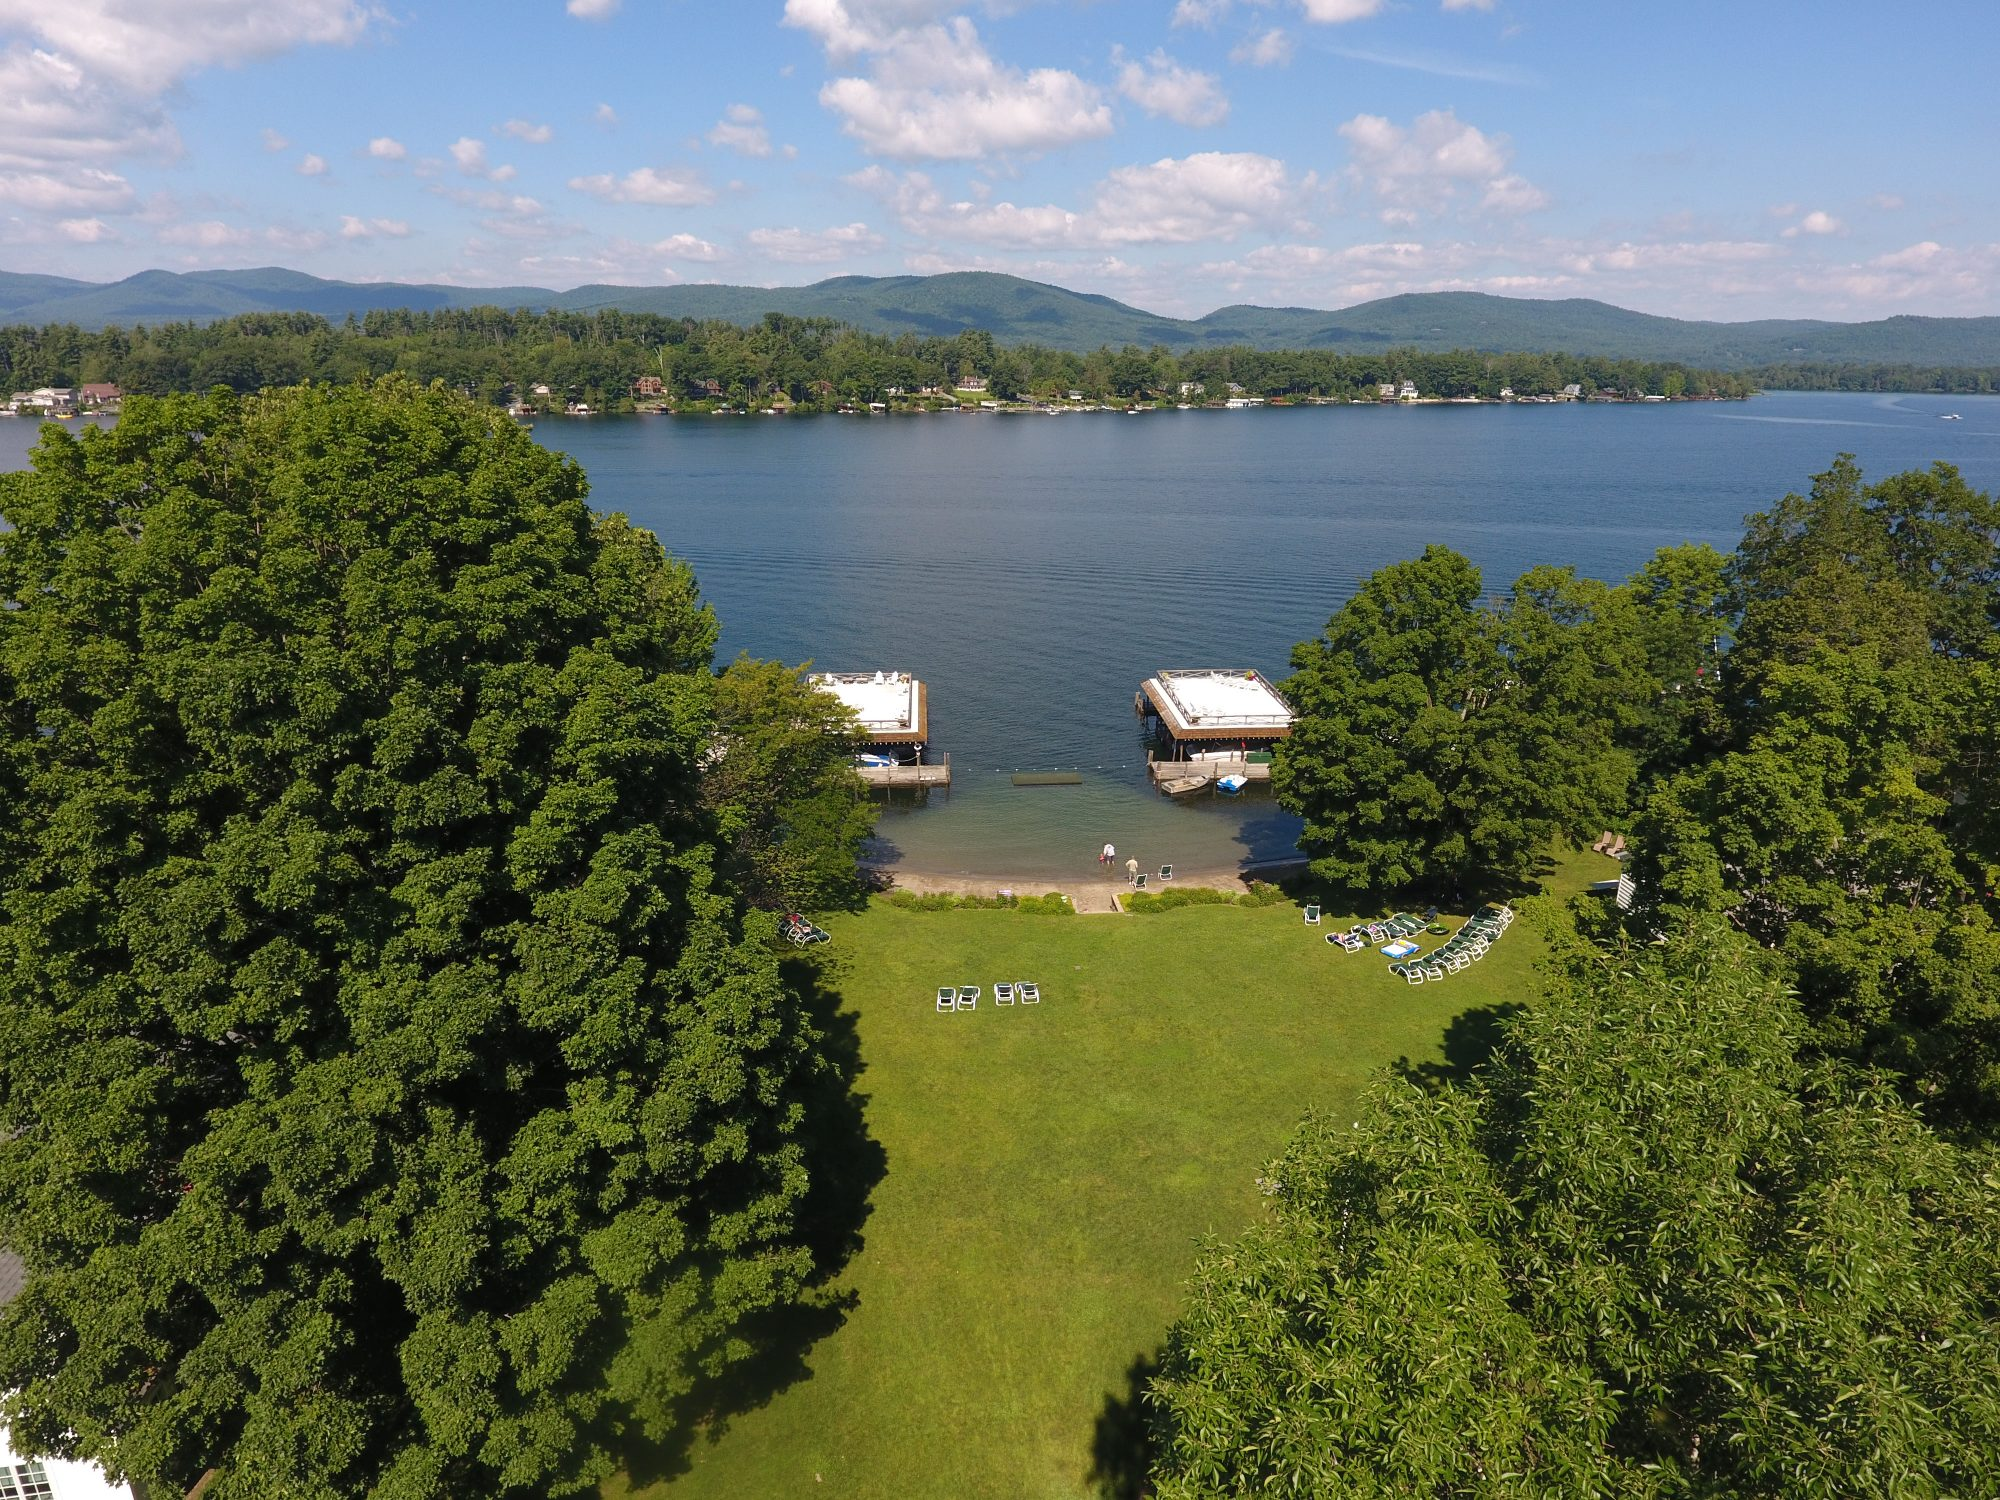 Lake George vacation cabin rental boathouse sundecks, lawns, private beach at Takundewide Cottages on Lake George